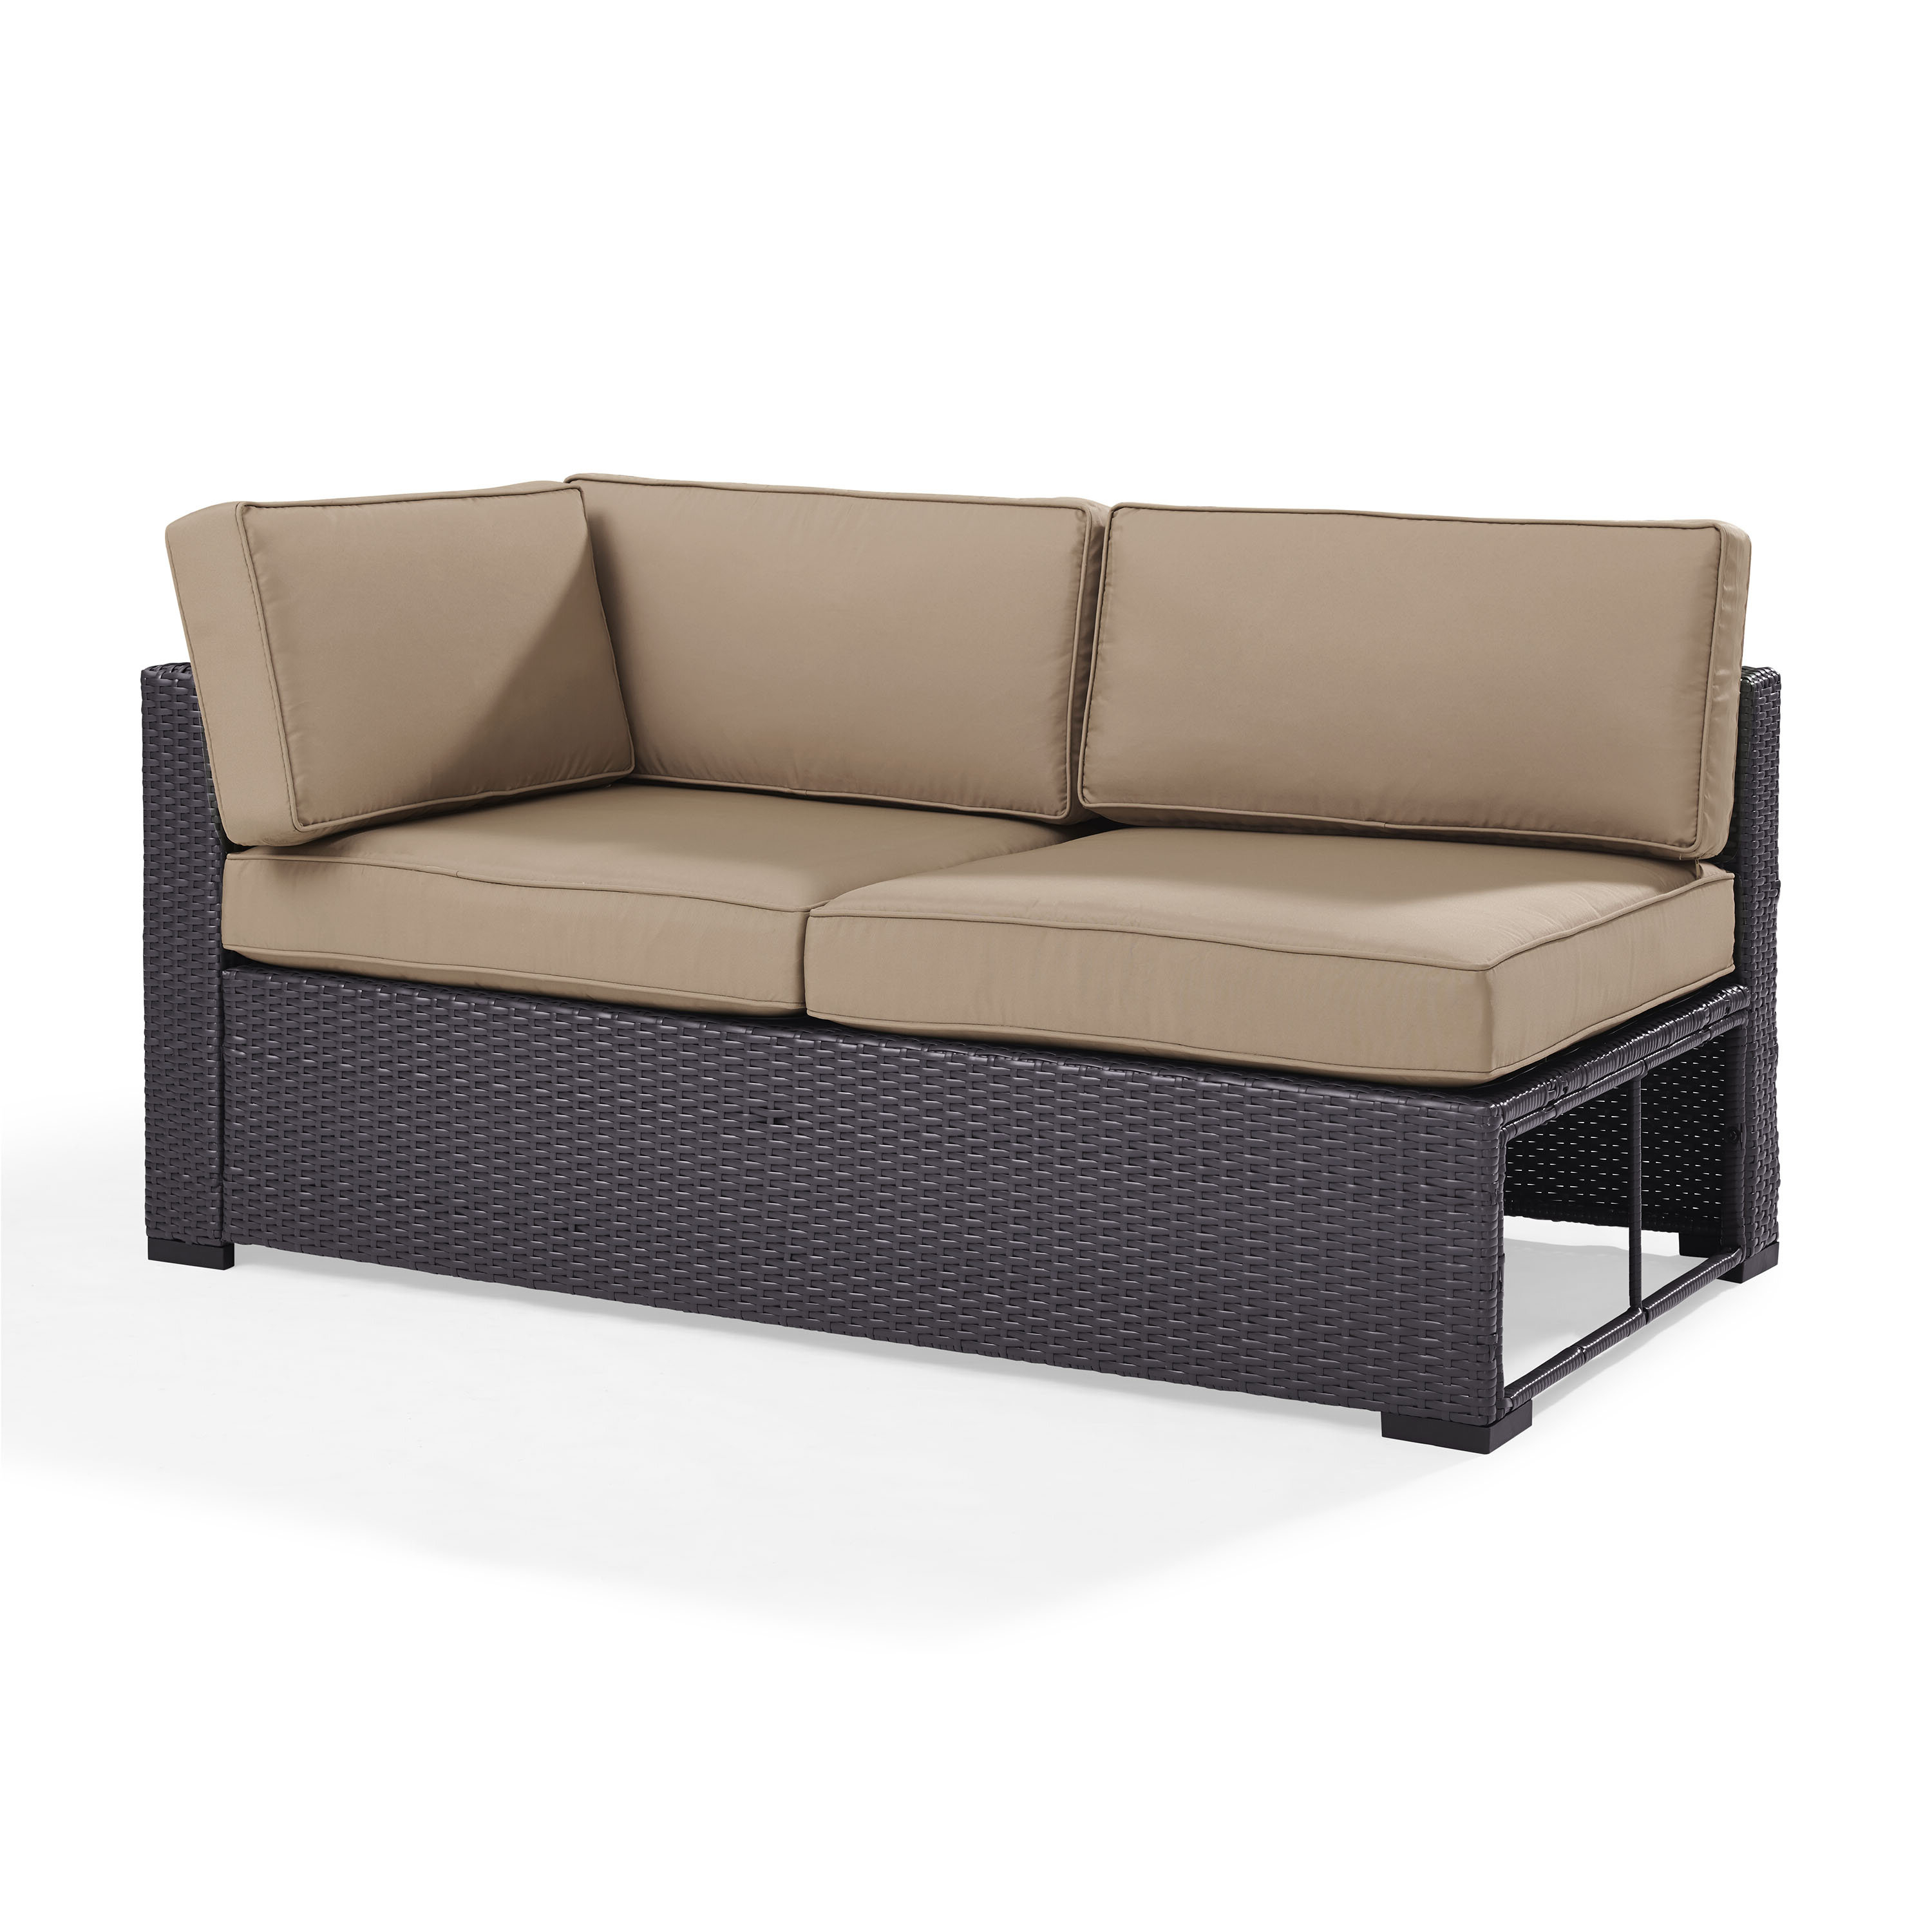 Dinah Loveseat With Cushions Intended For Well Known Mosca Patio Loveseats With Cushions (View 3 of 20)